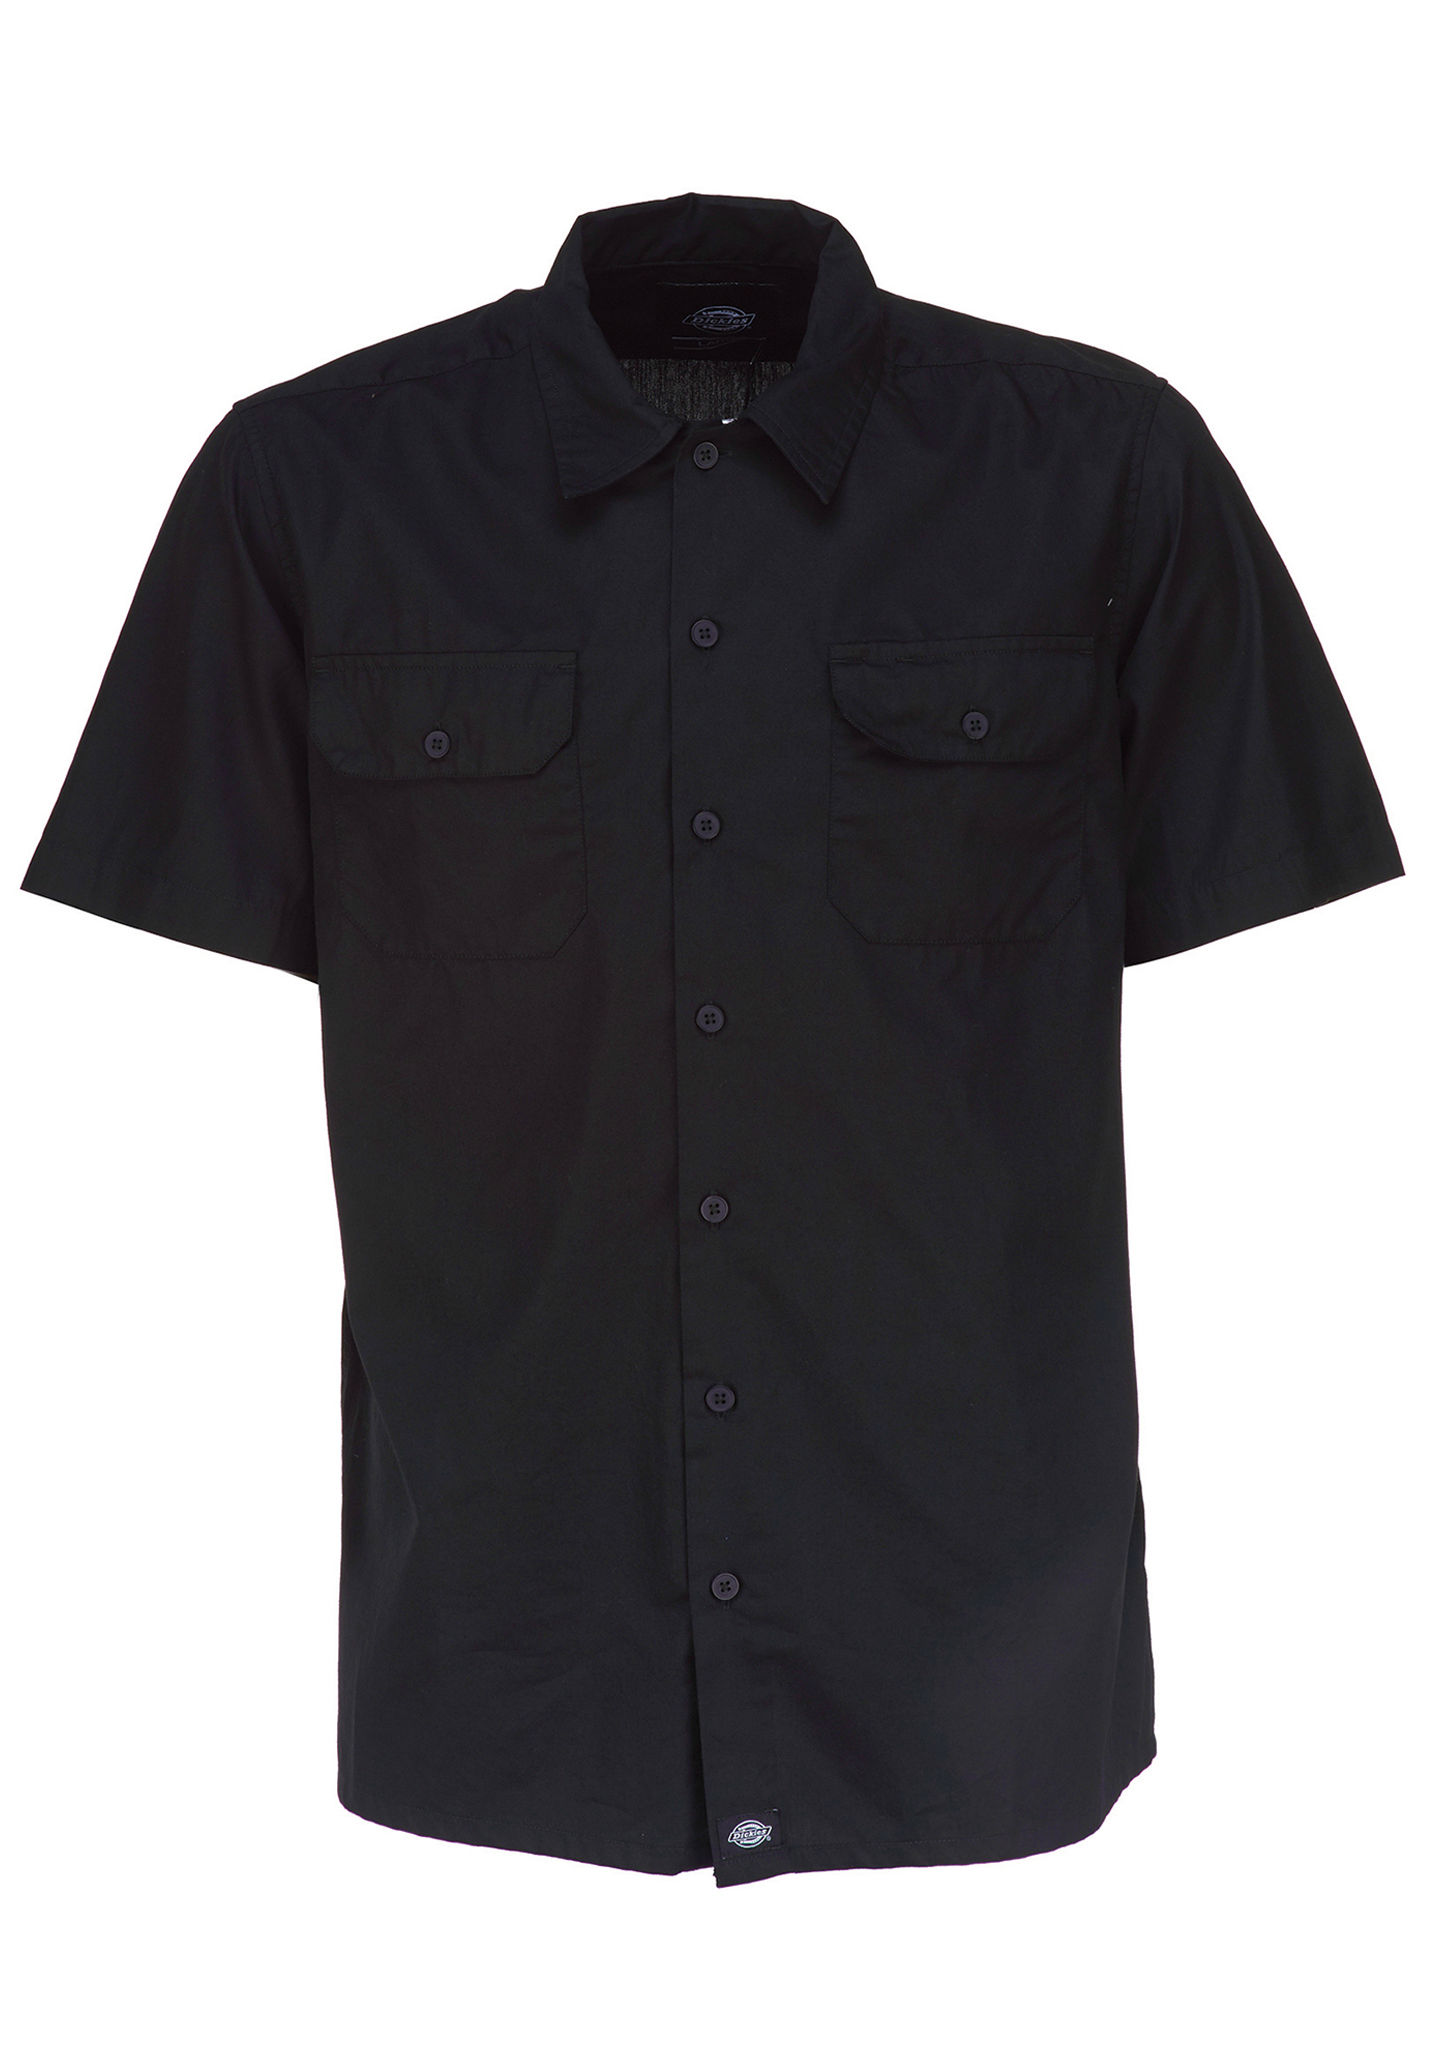 Planet per Talpa Dickies Uomo Camicia Sports Nero dXPEnqOEp